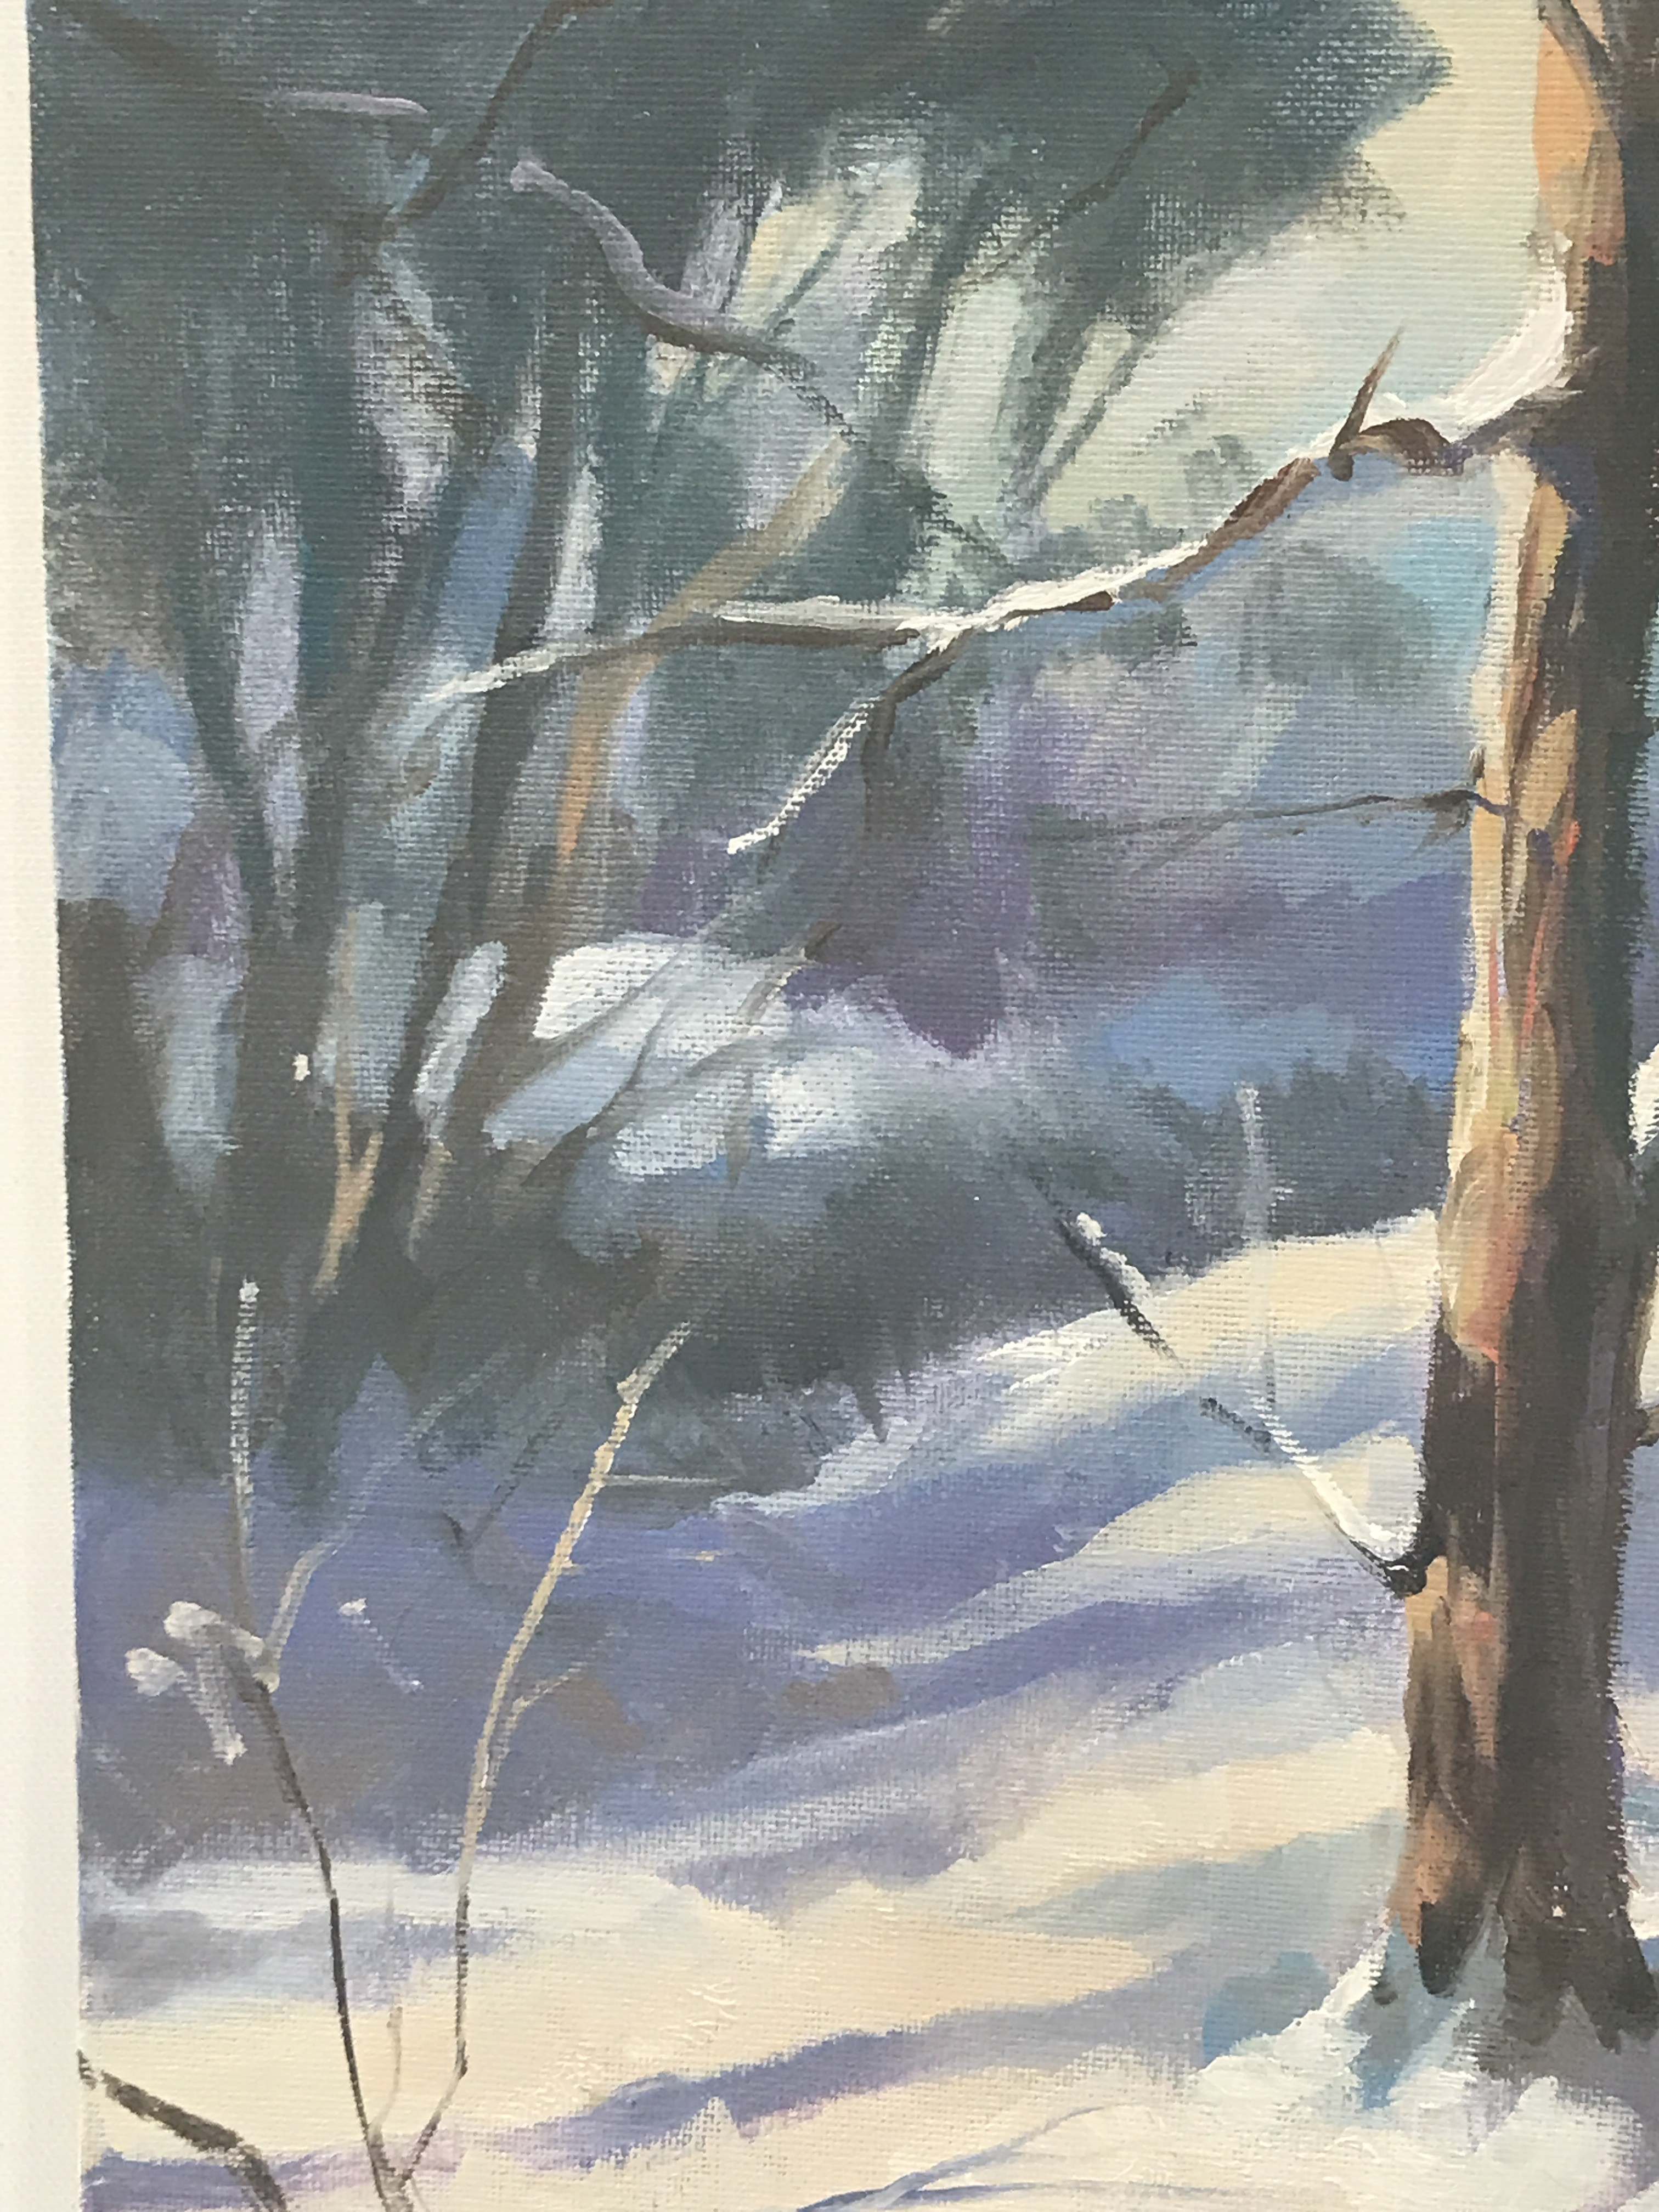 Trevor Waugh, Winter Trees, is an original oil painting depicting a snowy winter scene in a copse of trees.